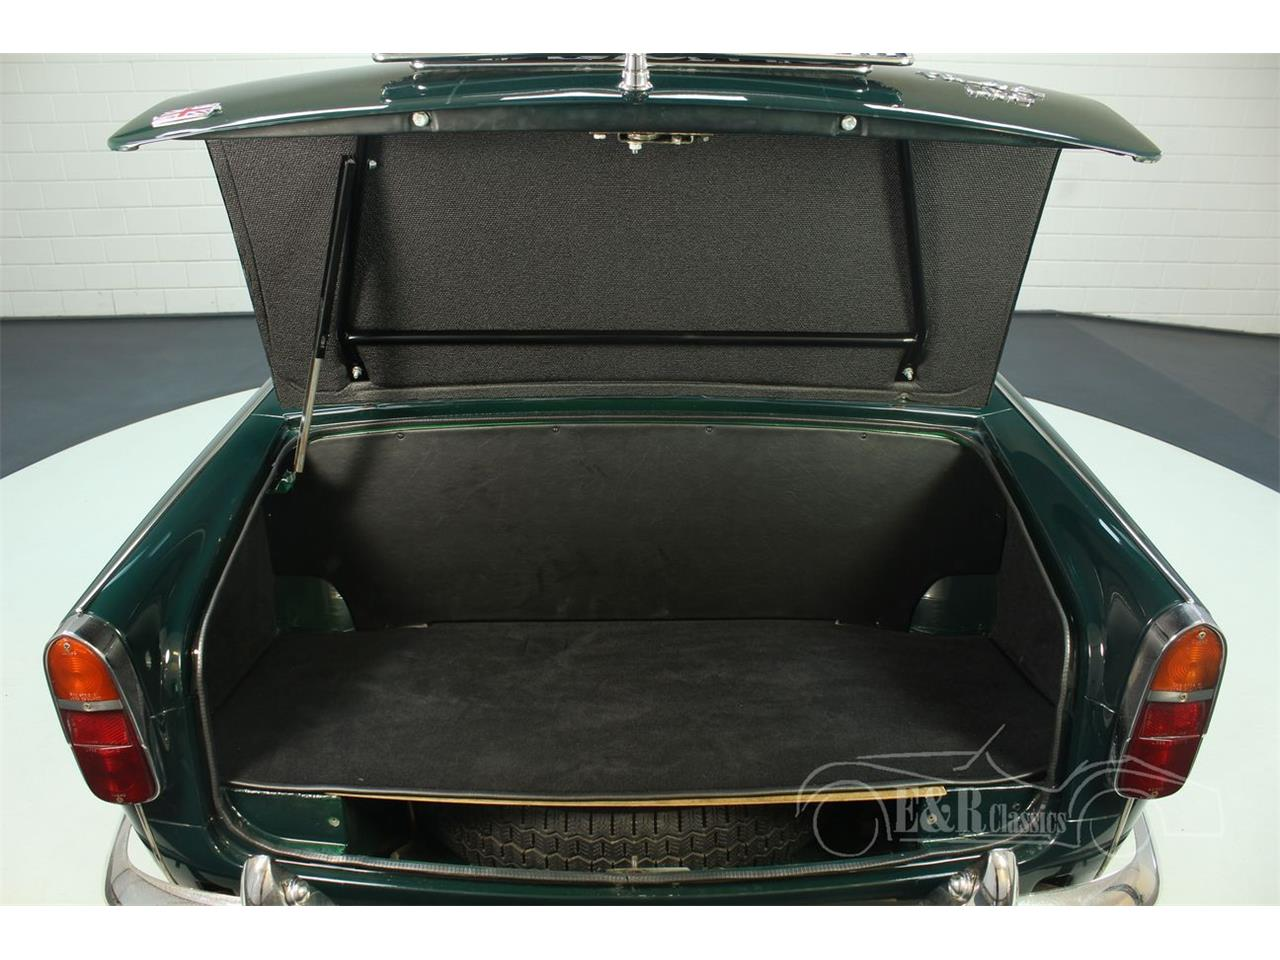 Large Picture of '67 Triumph TR4 Offered by E & R Classics - Q45O